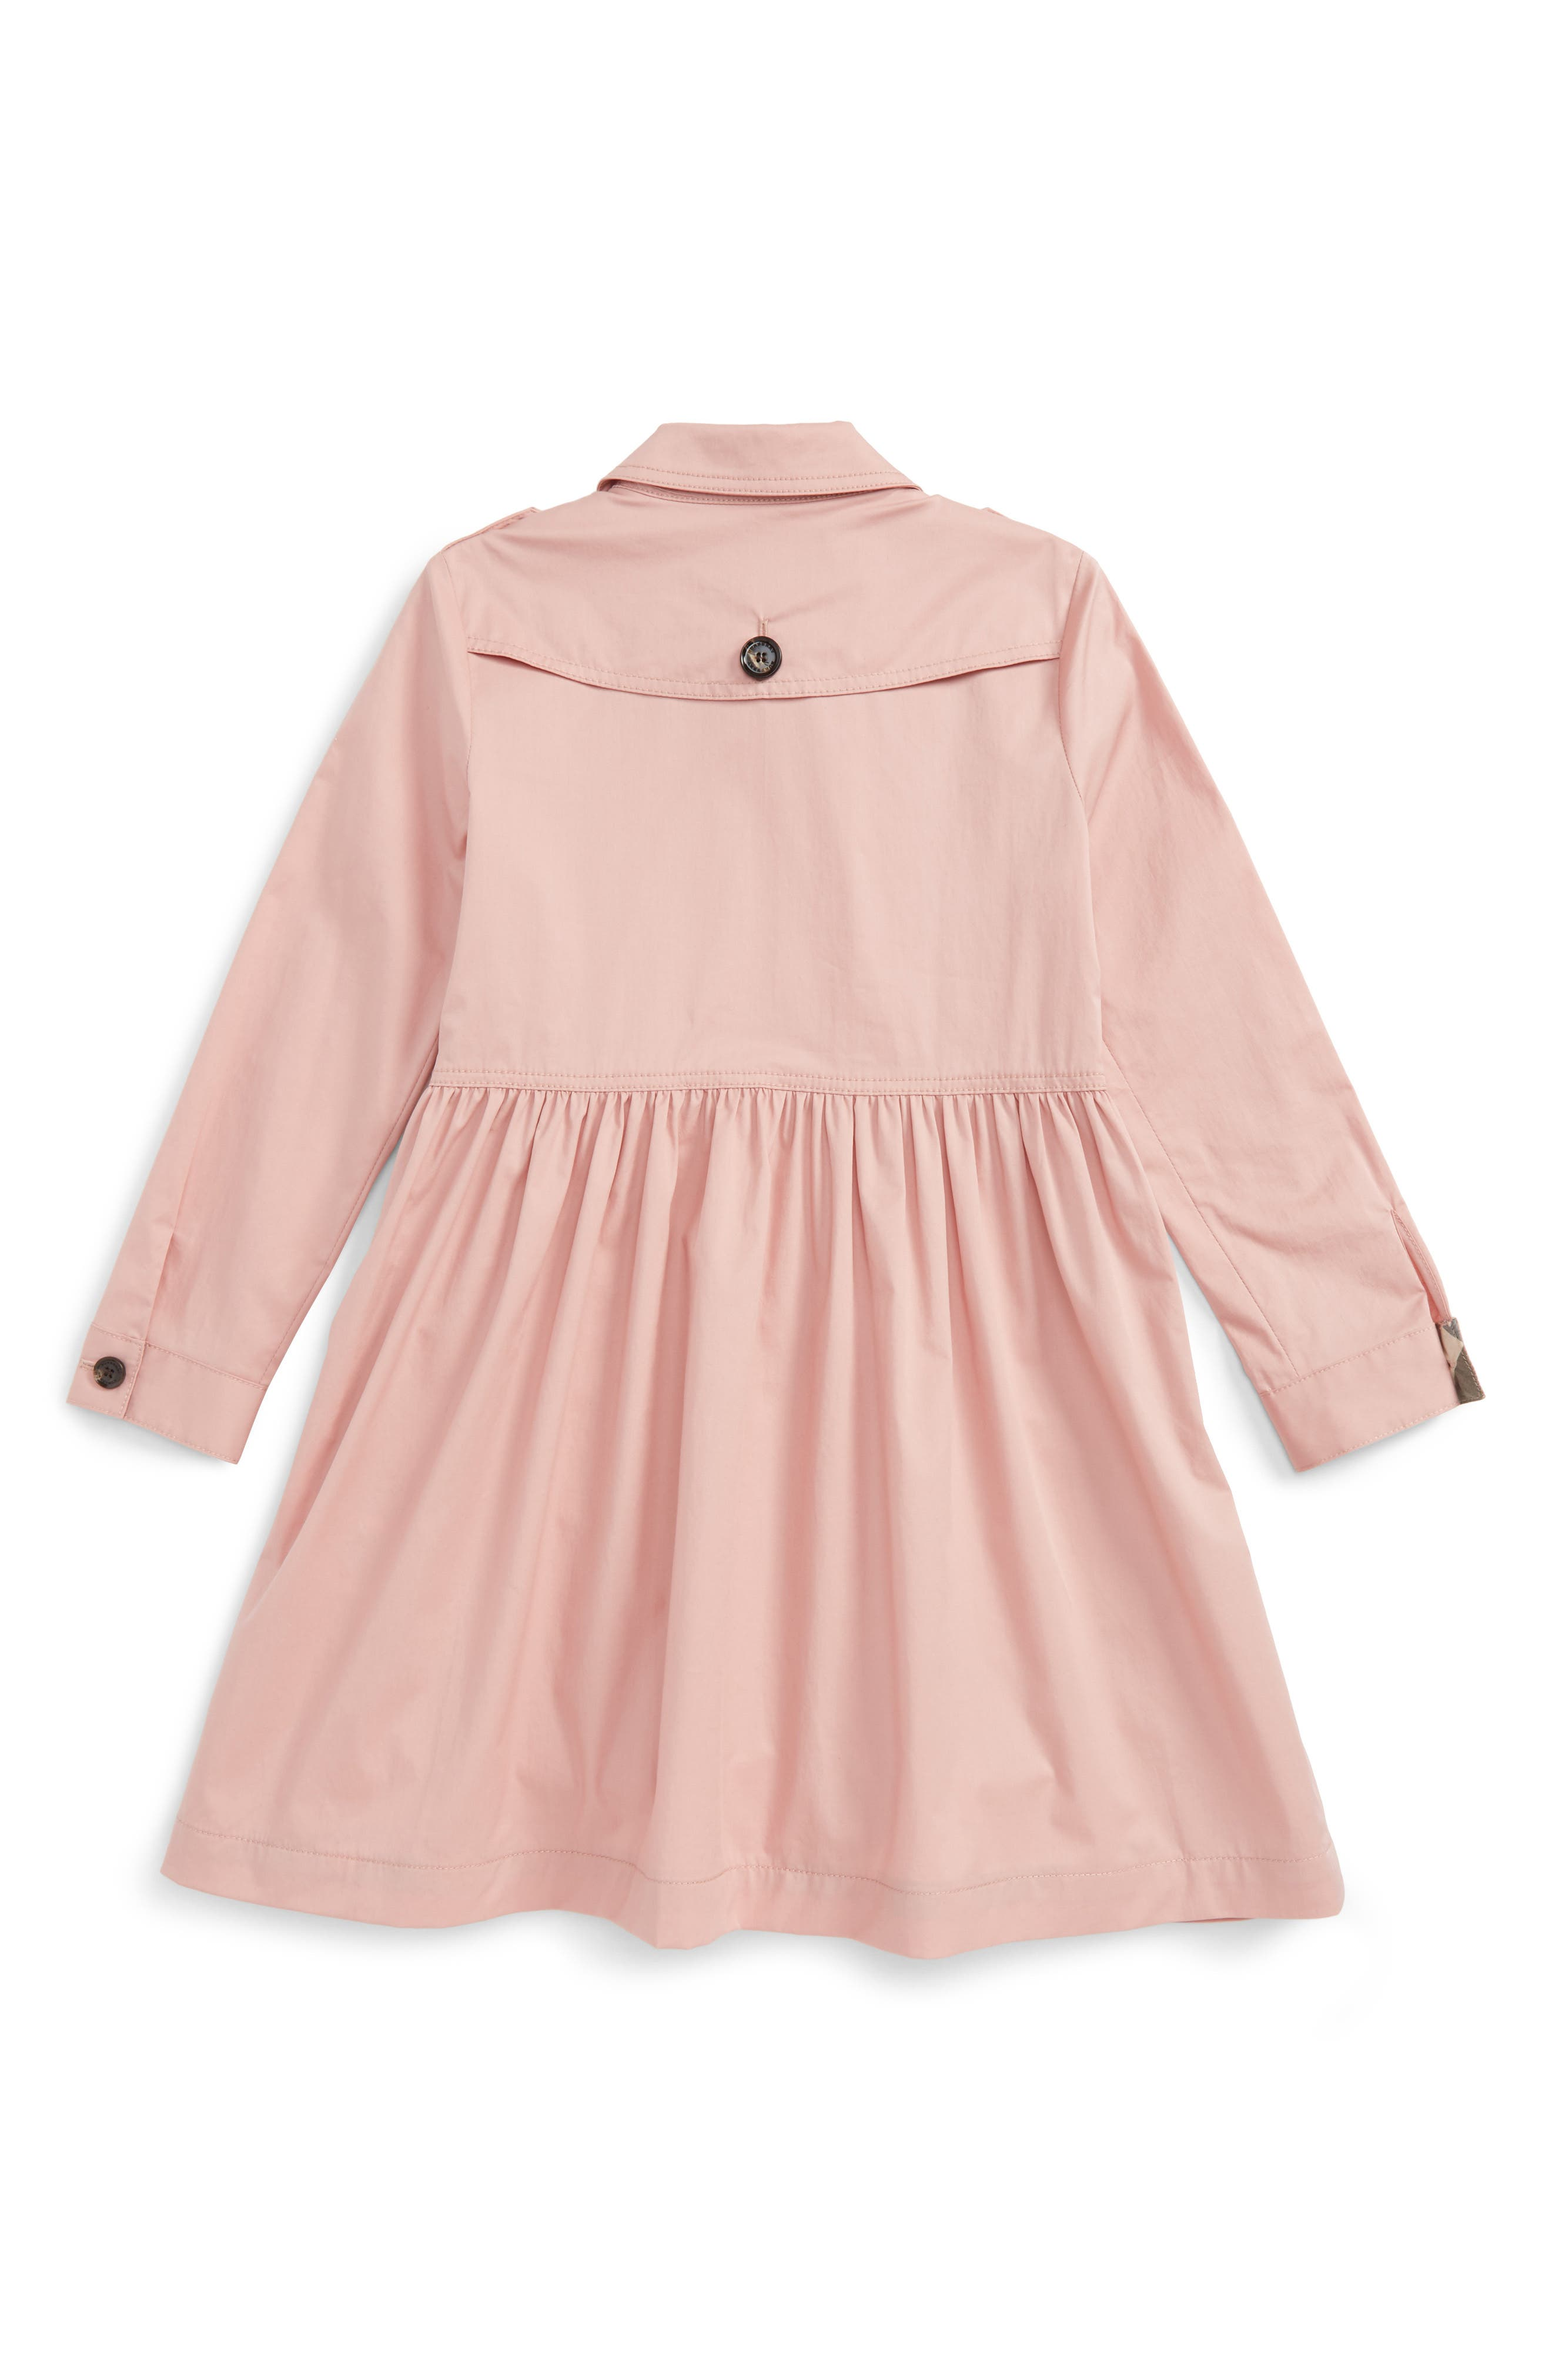 Lillyana Trench Dress,                             Alternate thumbnail 2, color,                             Pale Rose